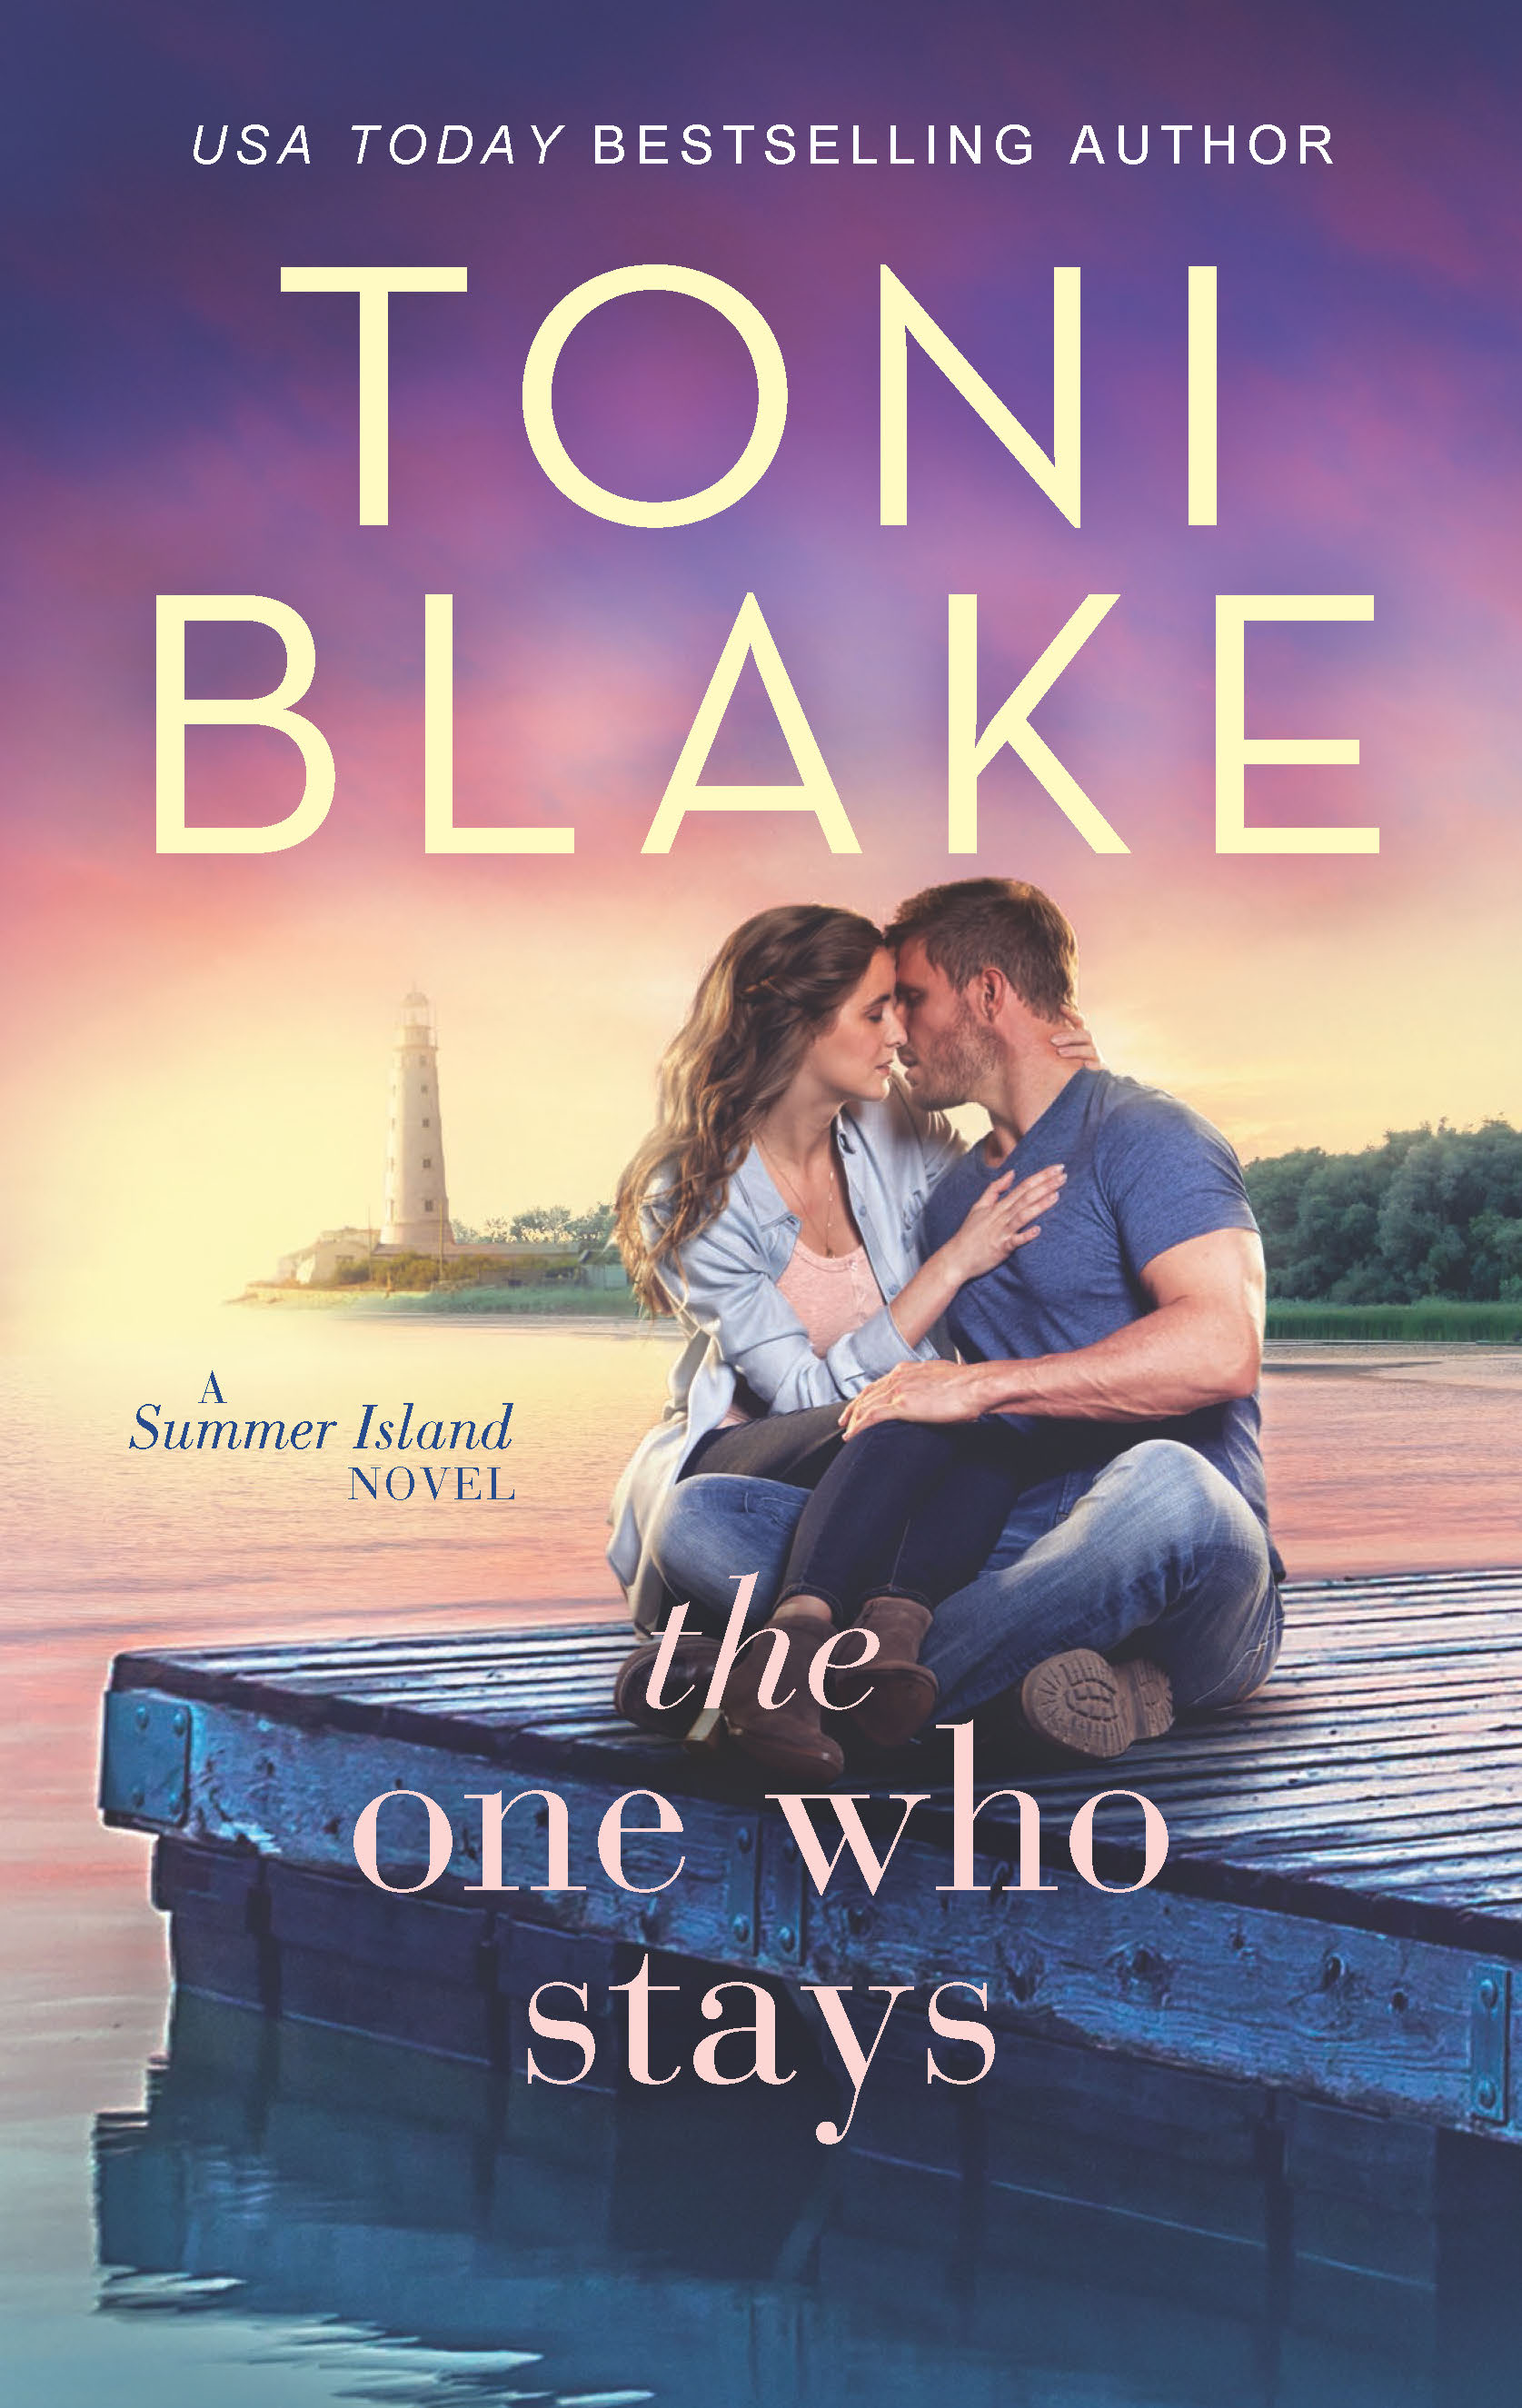 The One Who Stays A Summer Island Novel, Book 1 Now Available